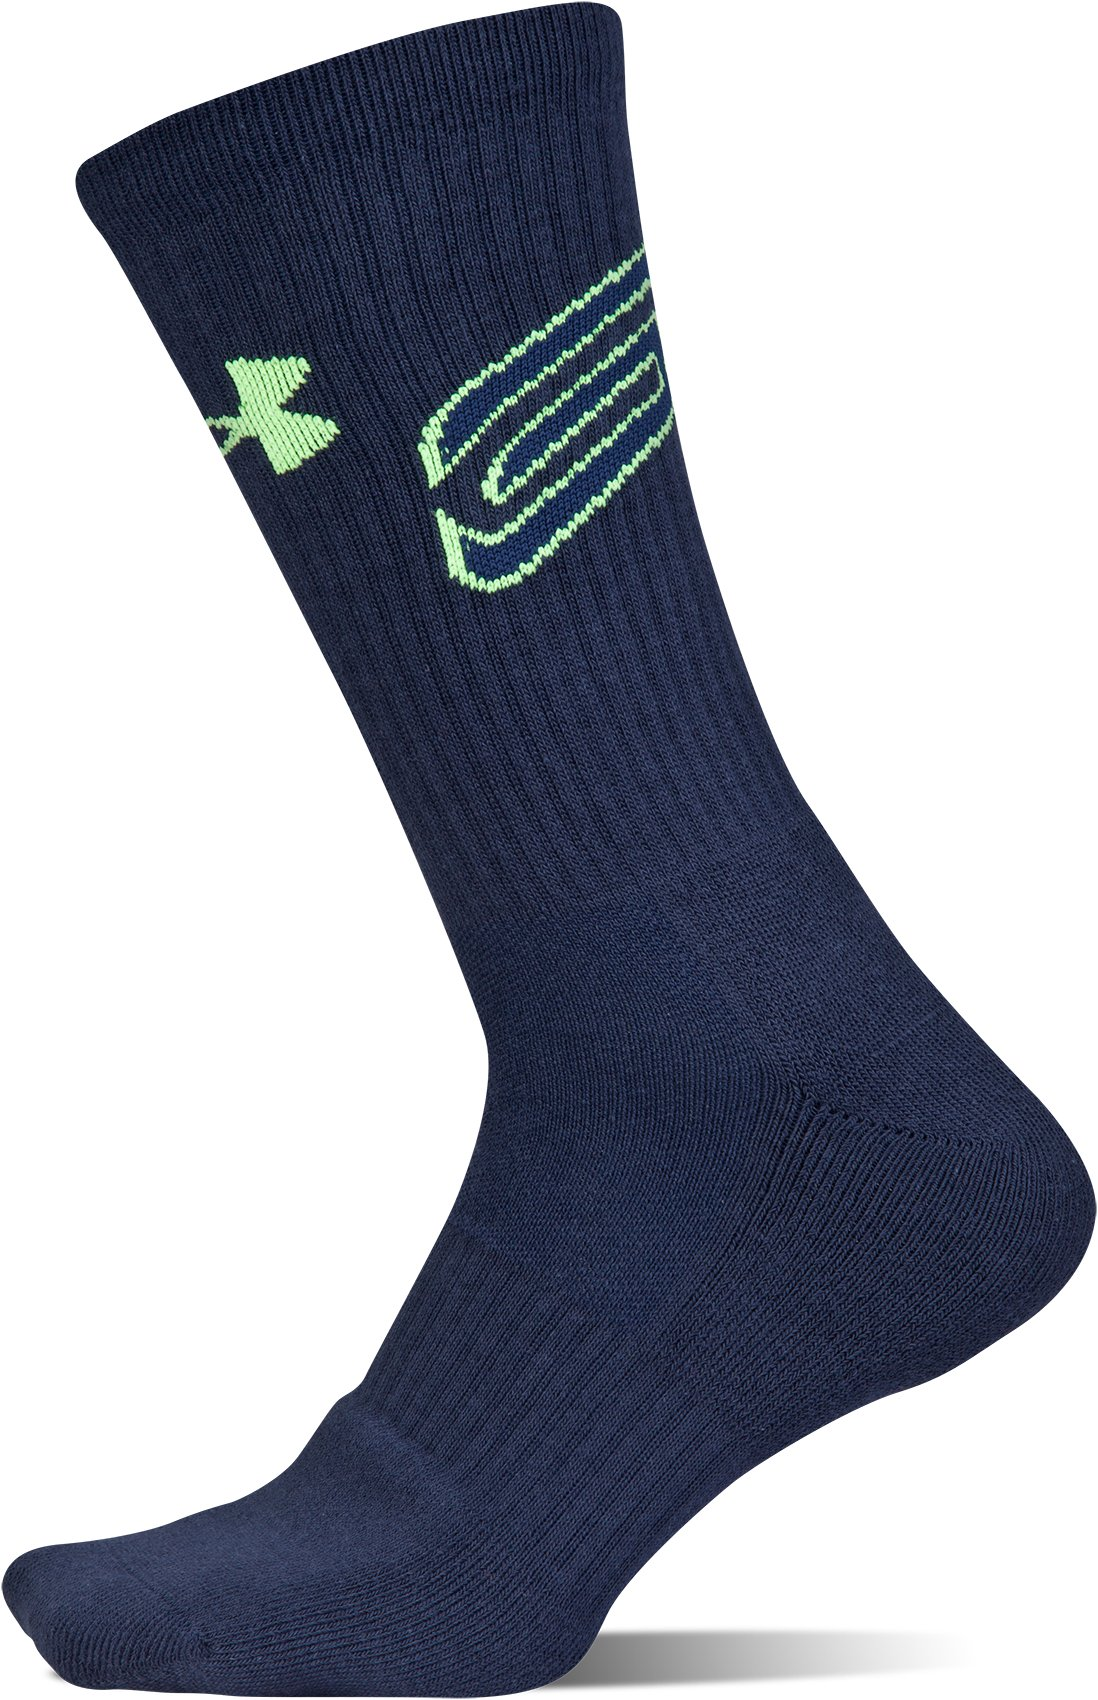 Men's SC30 Phenom Crew Socks – 3-Pack, BAYOU BLUE,